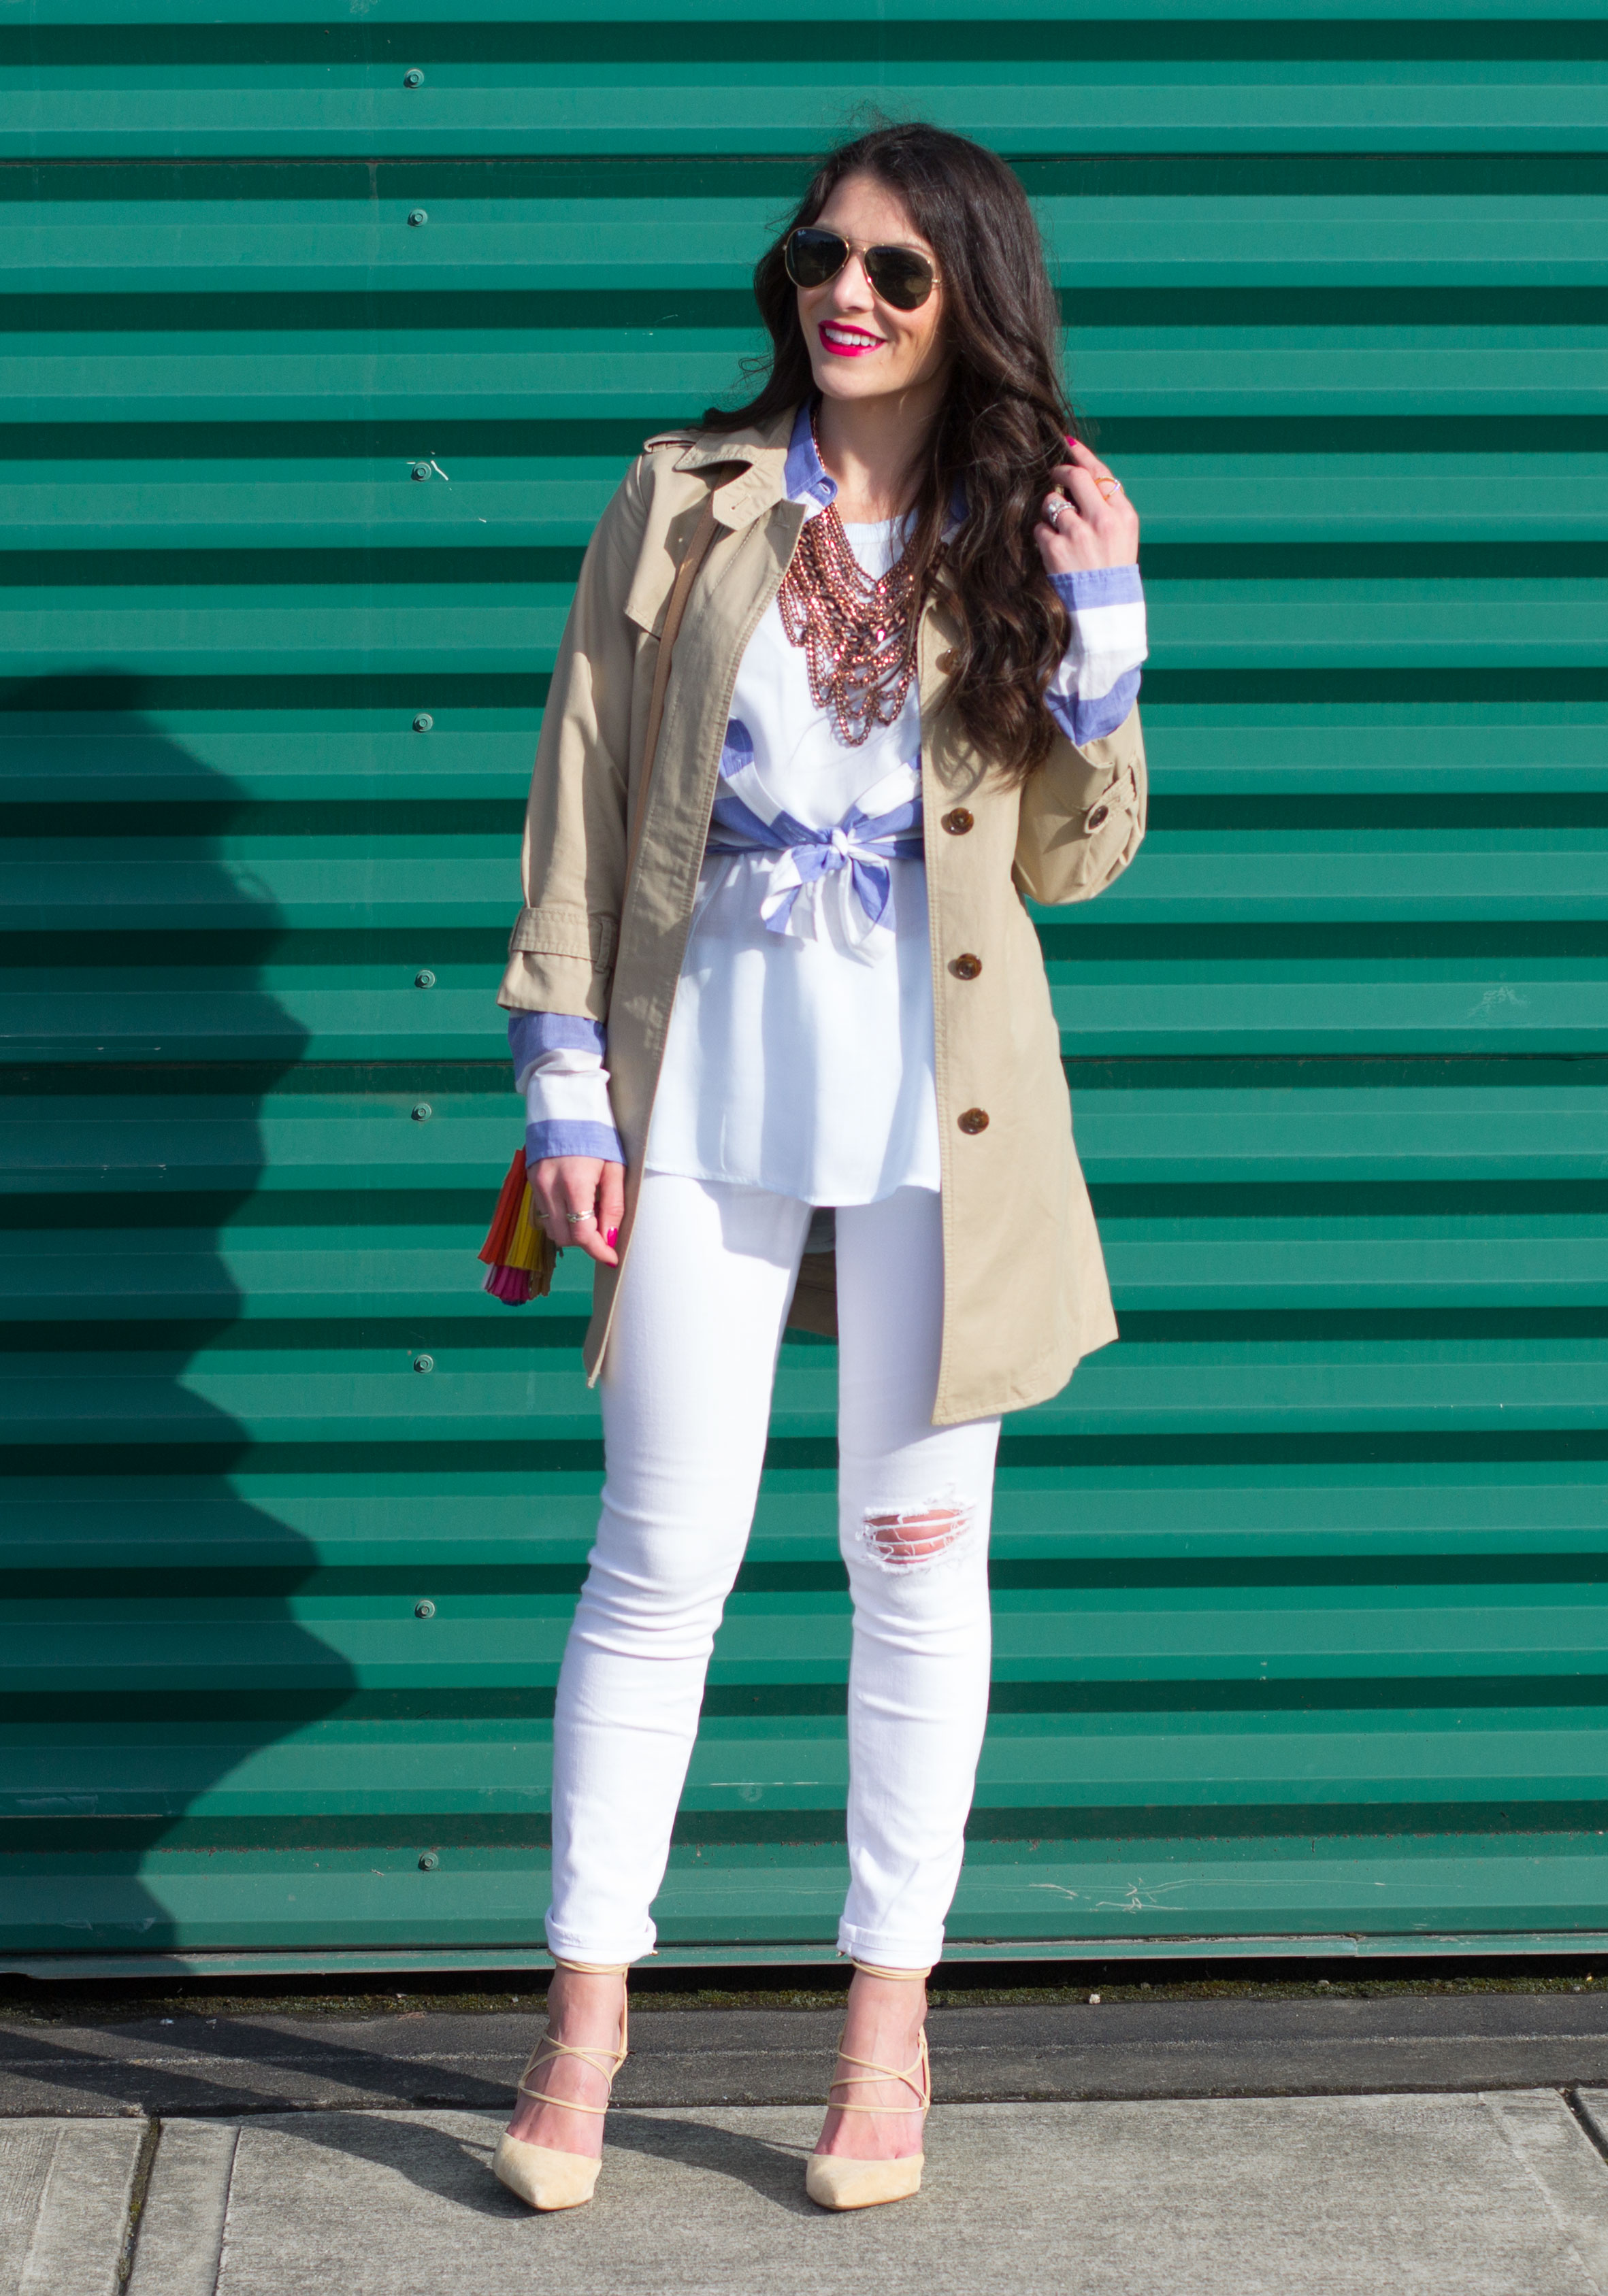 Spring Transitional Outfit, Banana Republic Trench Coat, Blue and White Stripe Shirt, High Low Layering Tank, Baublebar Courtney Bib Necklace, Destroyed White Skinny Jeans, and Sam Edelman Dayna Lace-Up Pumps